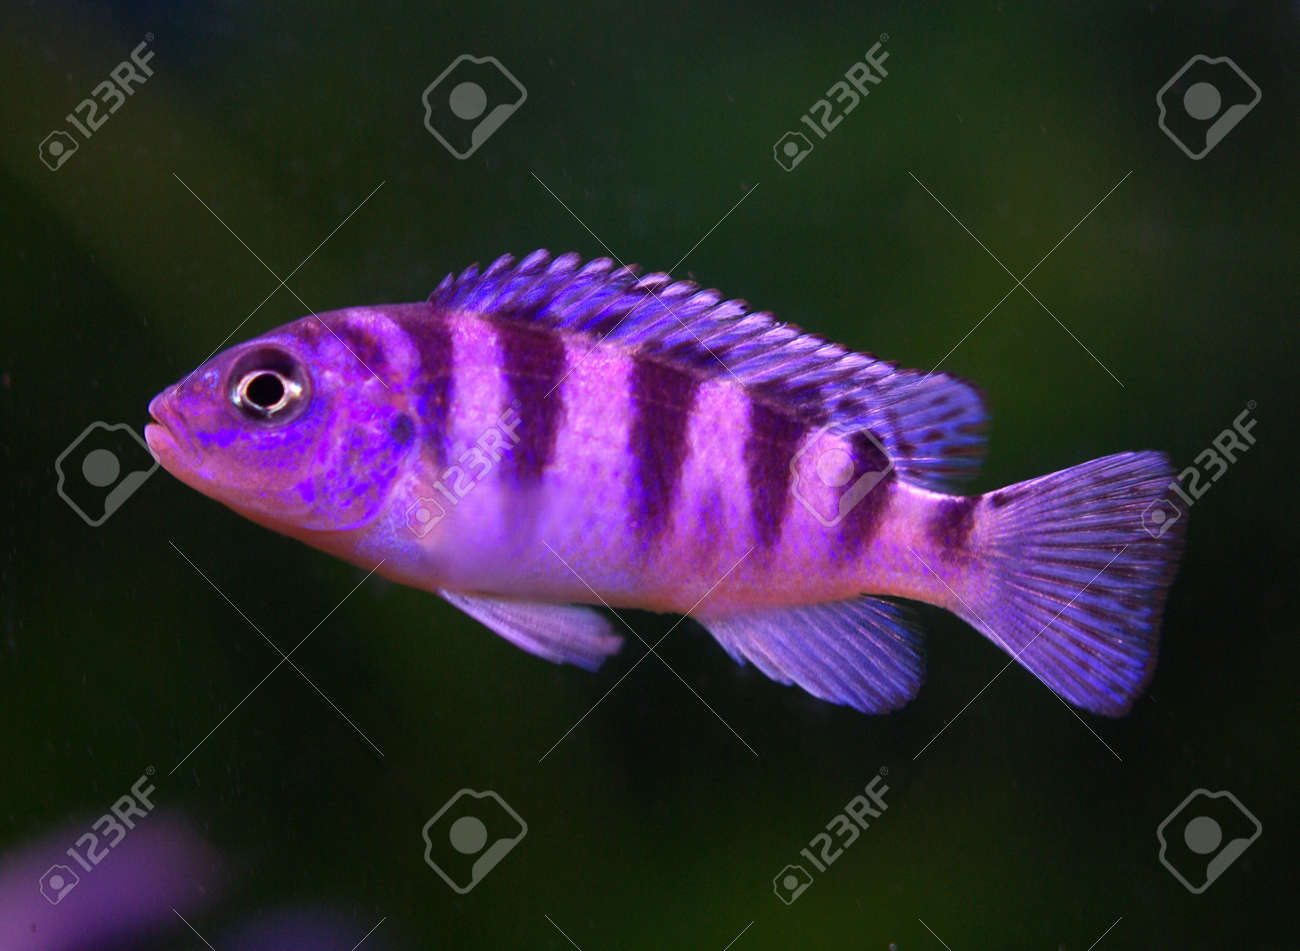 Cichlid in the aquarium on a background Stock Photo - 16776585